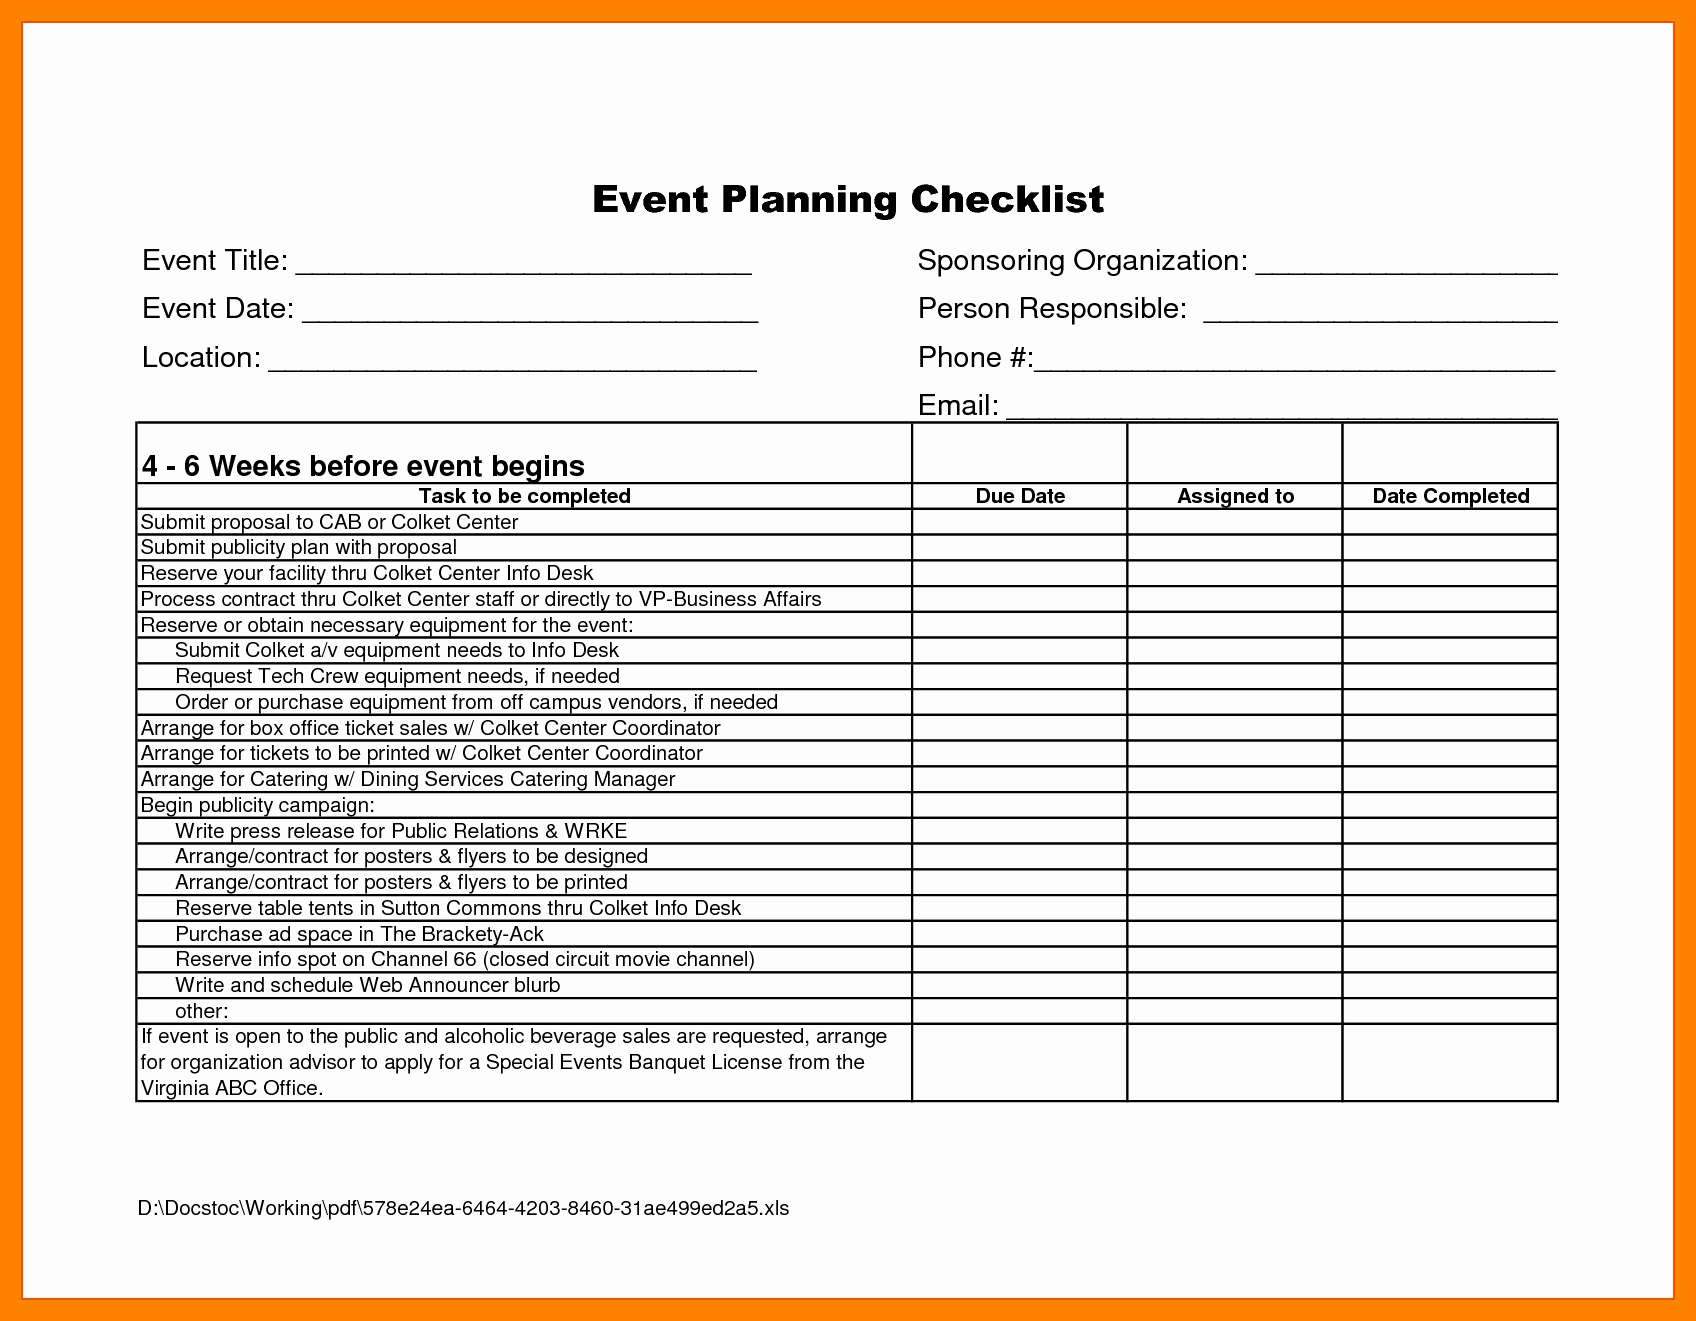 004 Corporate Event Planning Checklist Template Spreadsheet Vendor with Corporate Event Planning Checklist Template